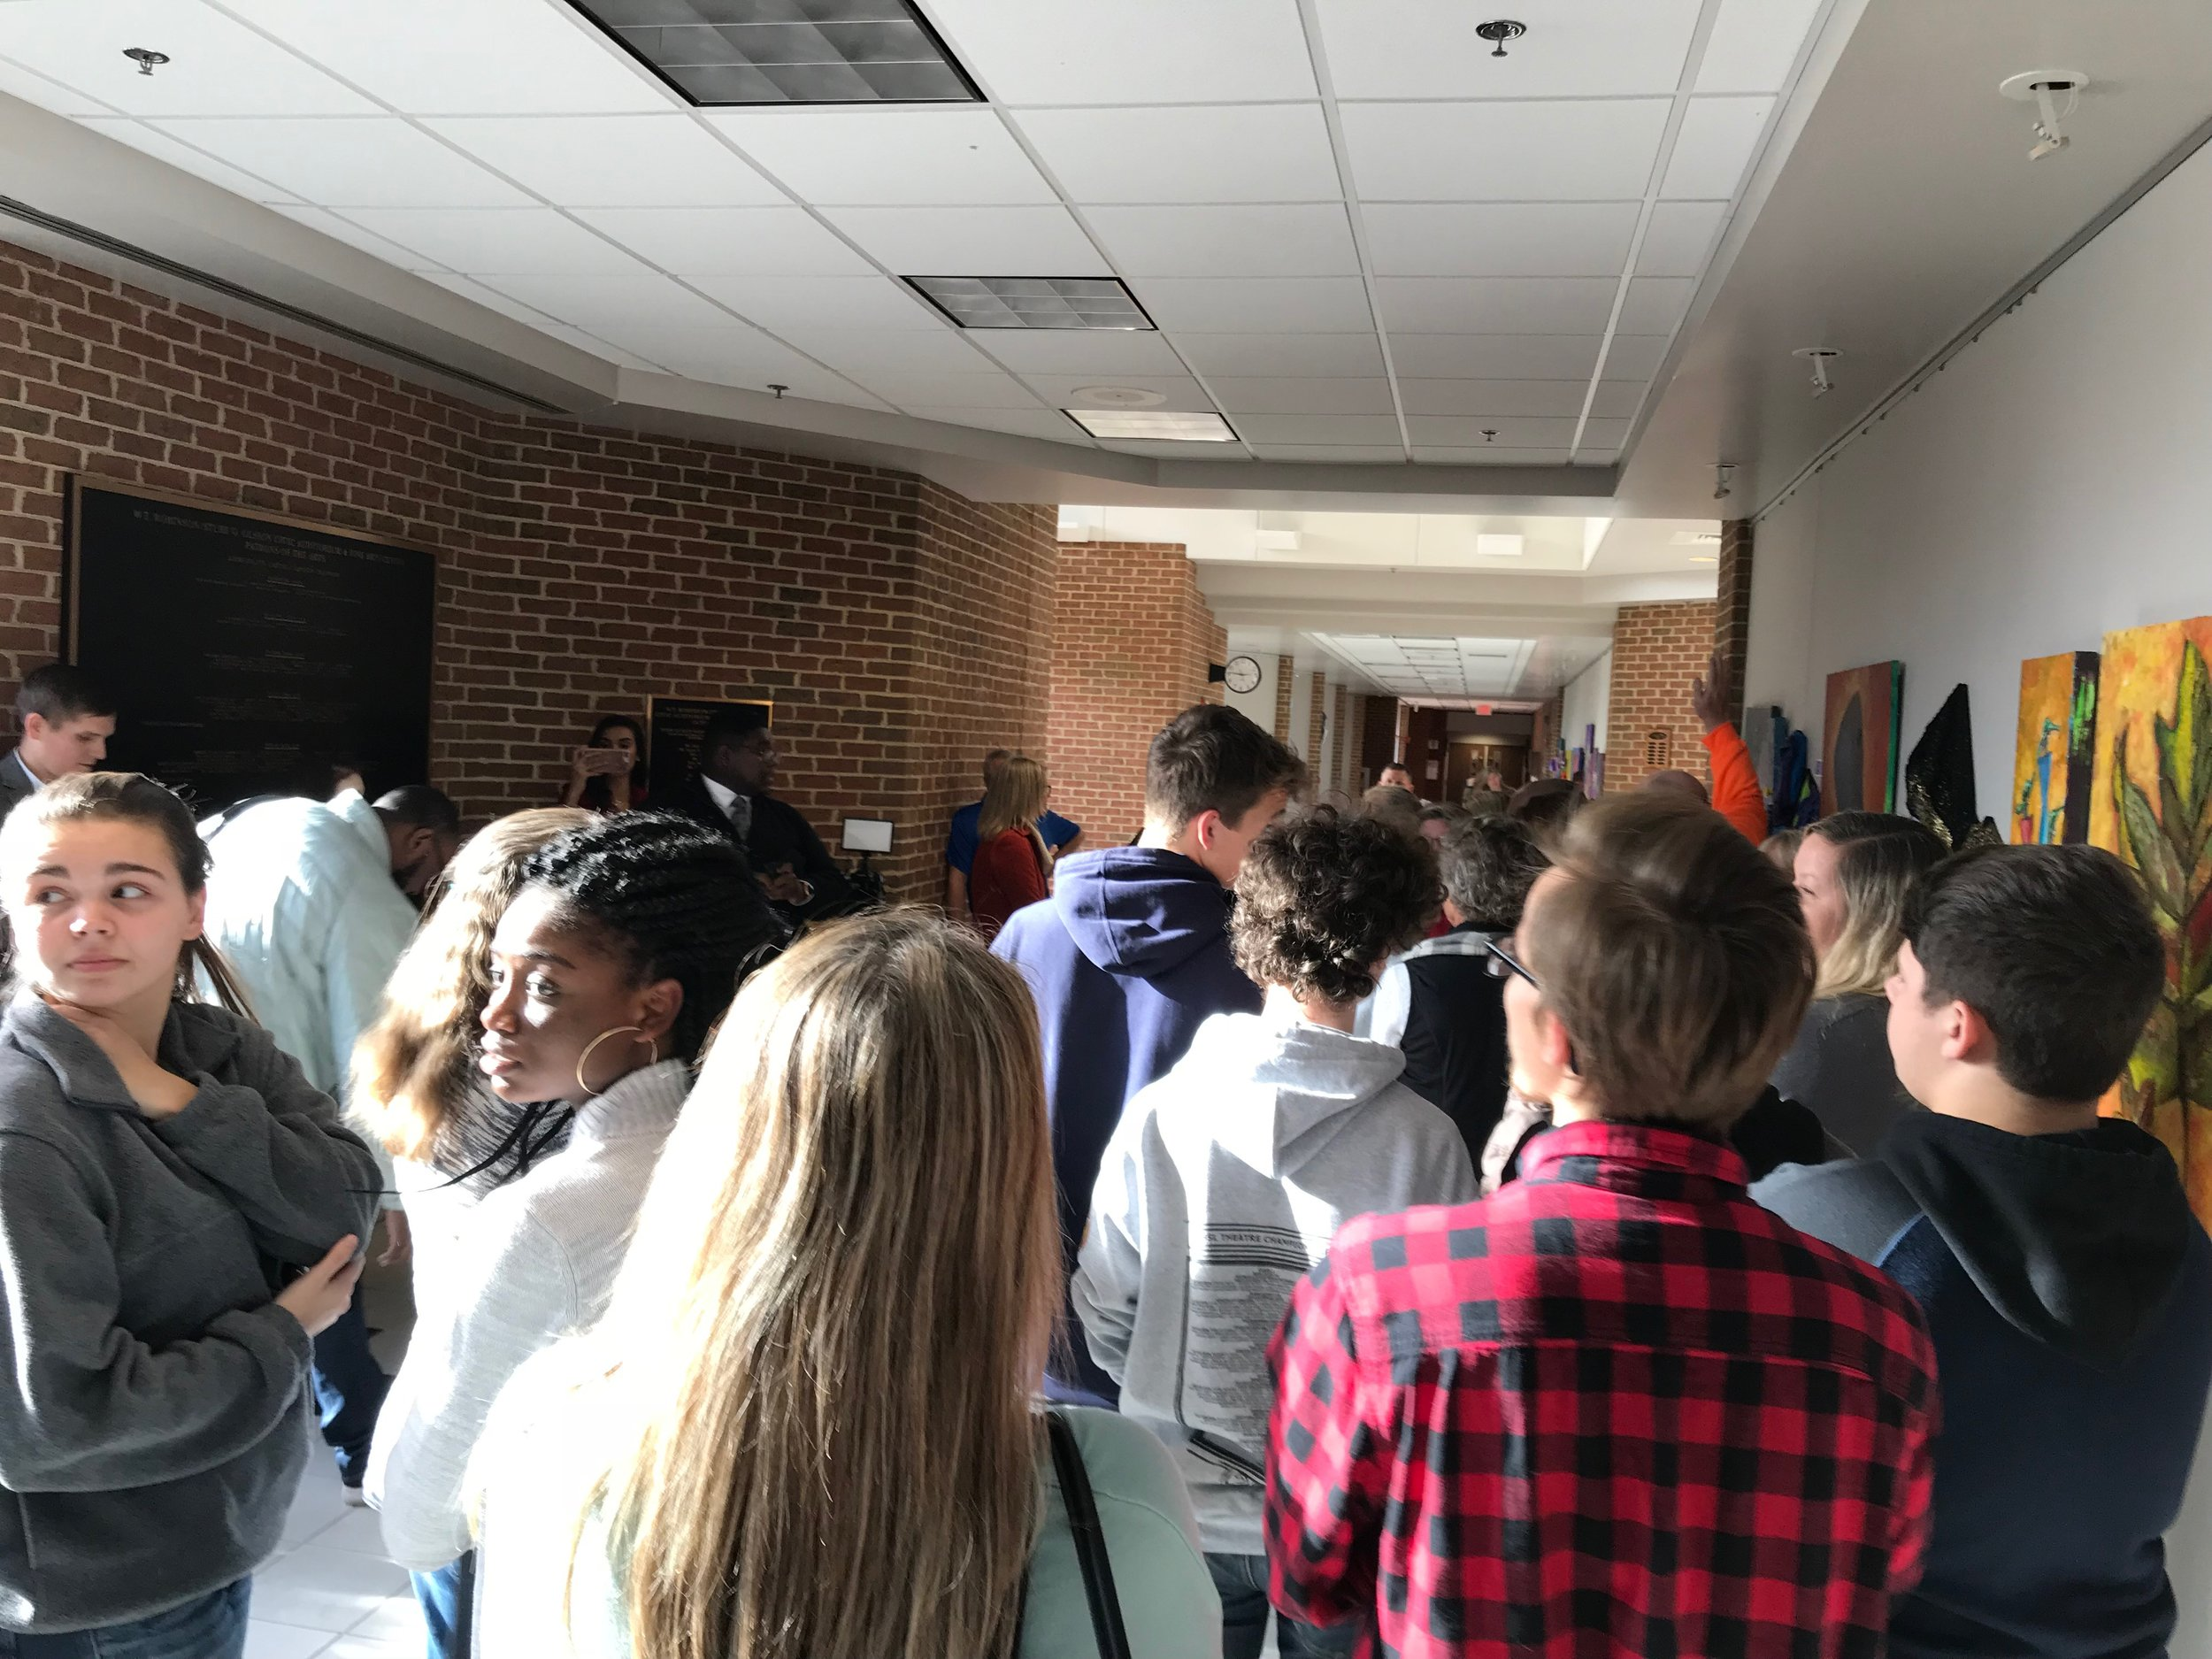 Students waiting in the hallway, hoping to show support for Mr. Vlaming. Only a handful were able to enter the room.